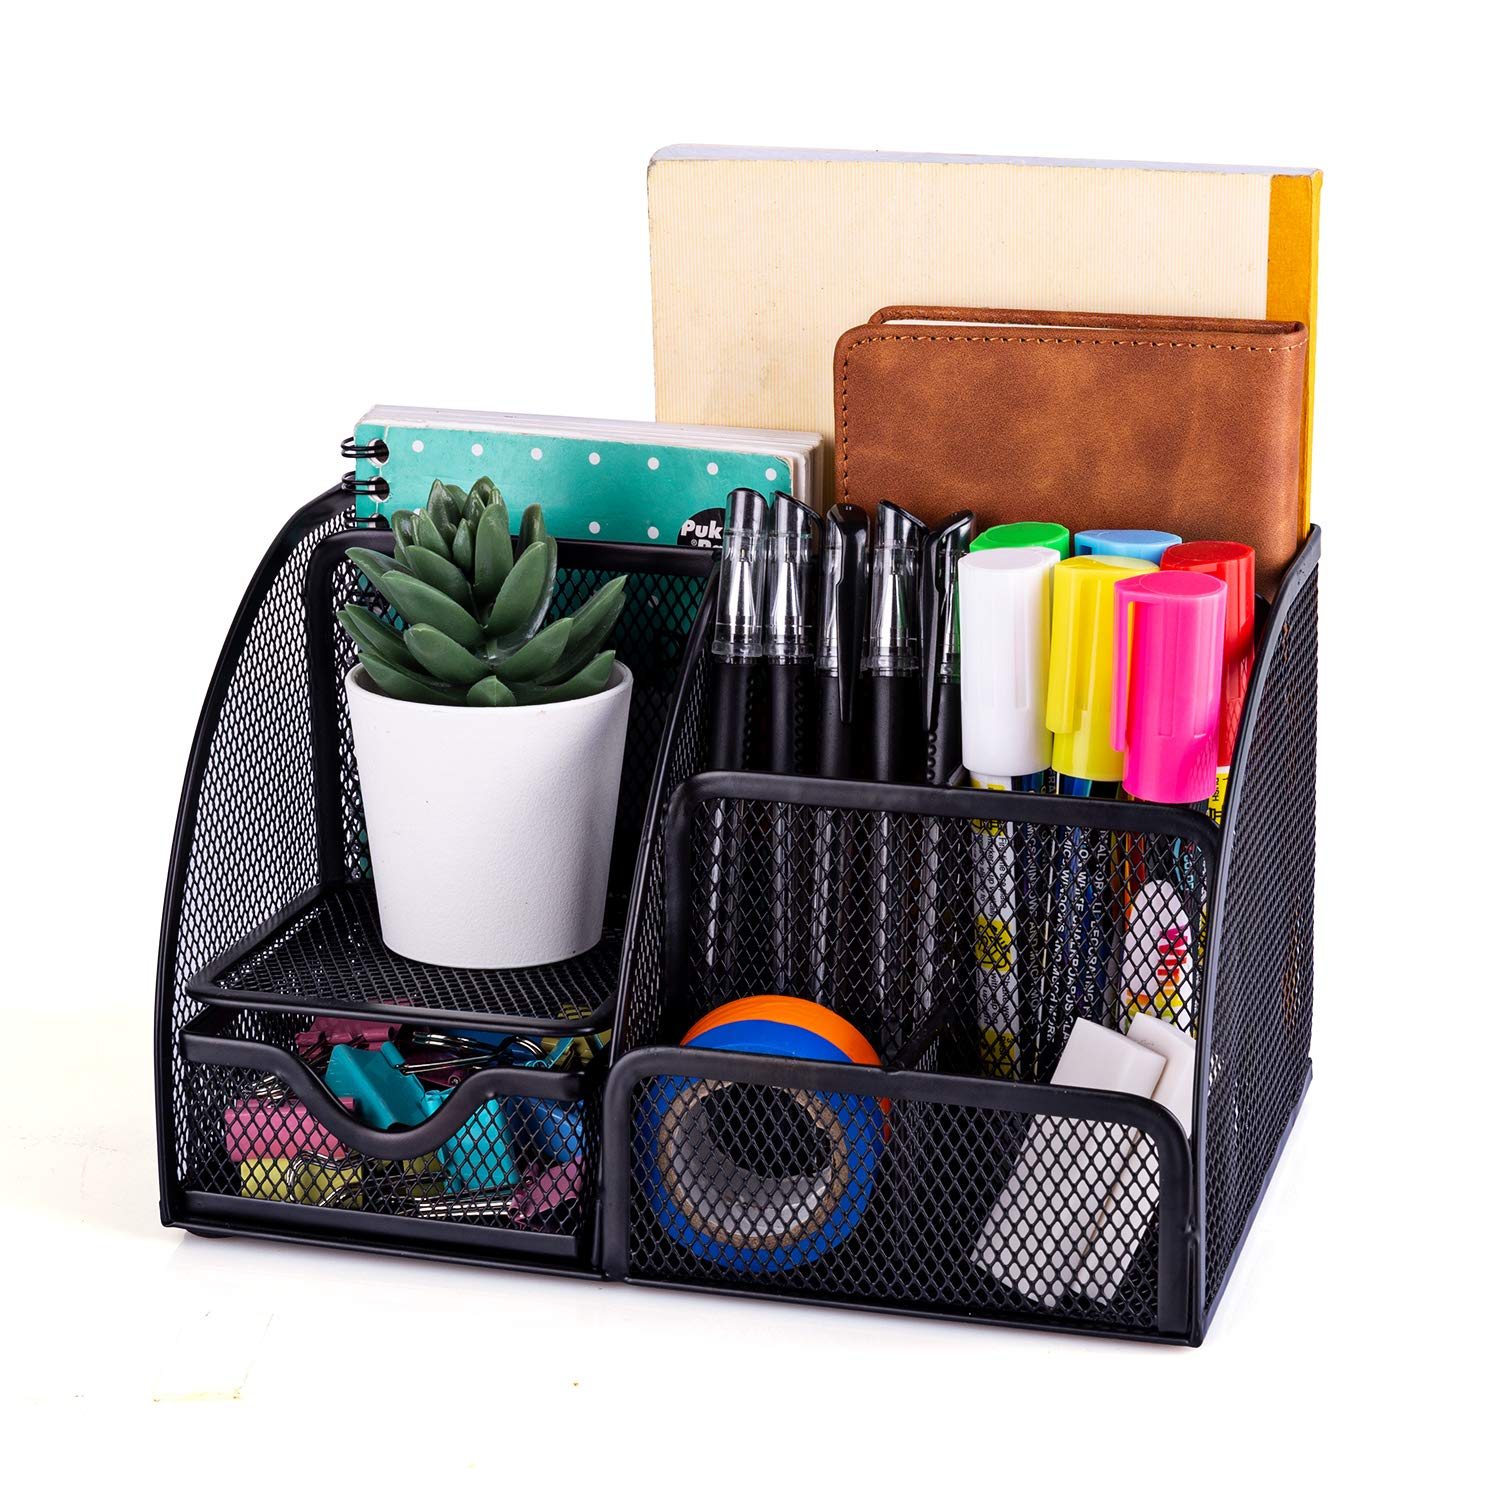 A desk organizer for office equipment.